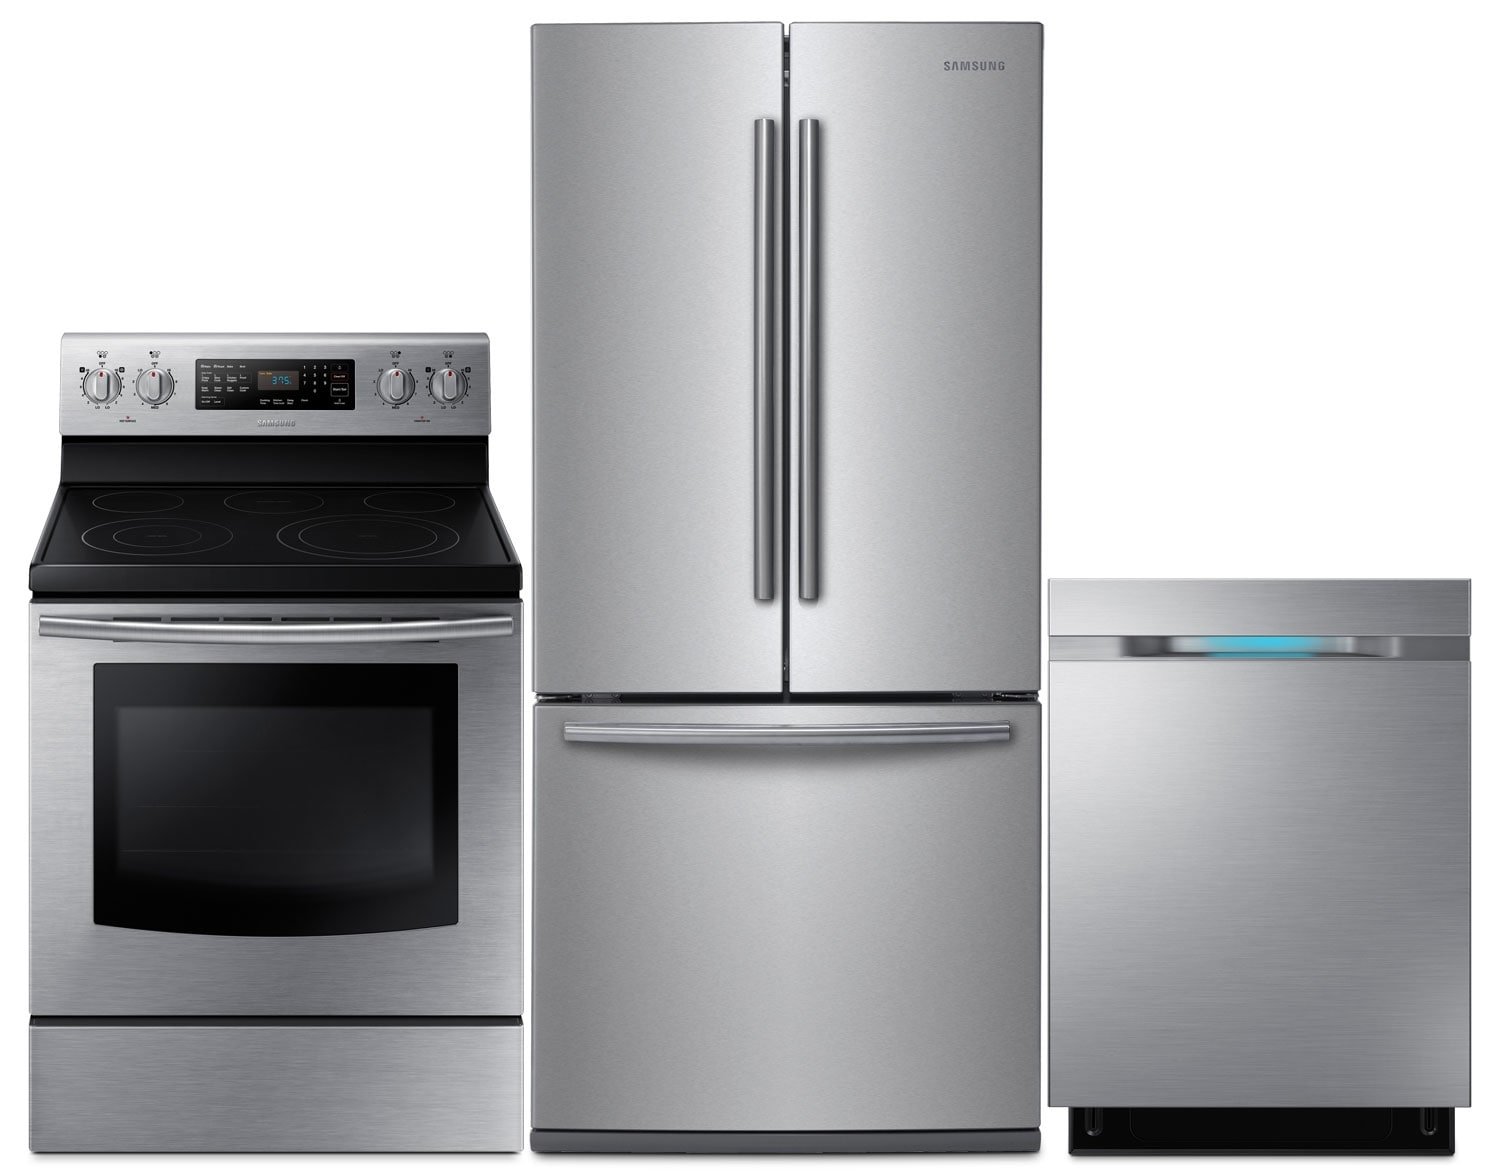 Clean-Up - Samsung 22 Cu. Ft. Refrigerator, 5.9 Cu. Ft. Electric Range and Built-In Dishwasher